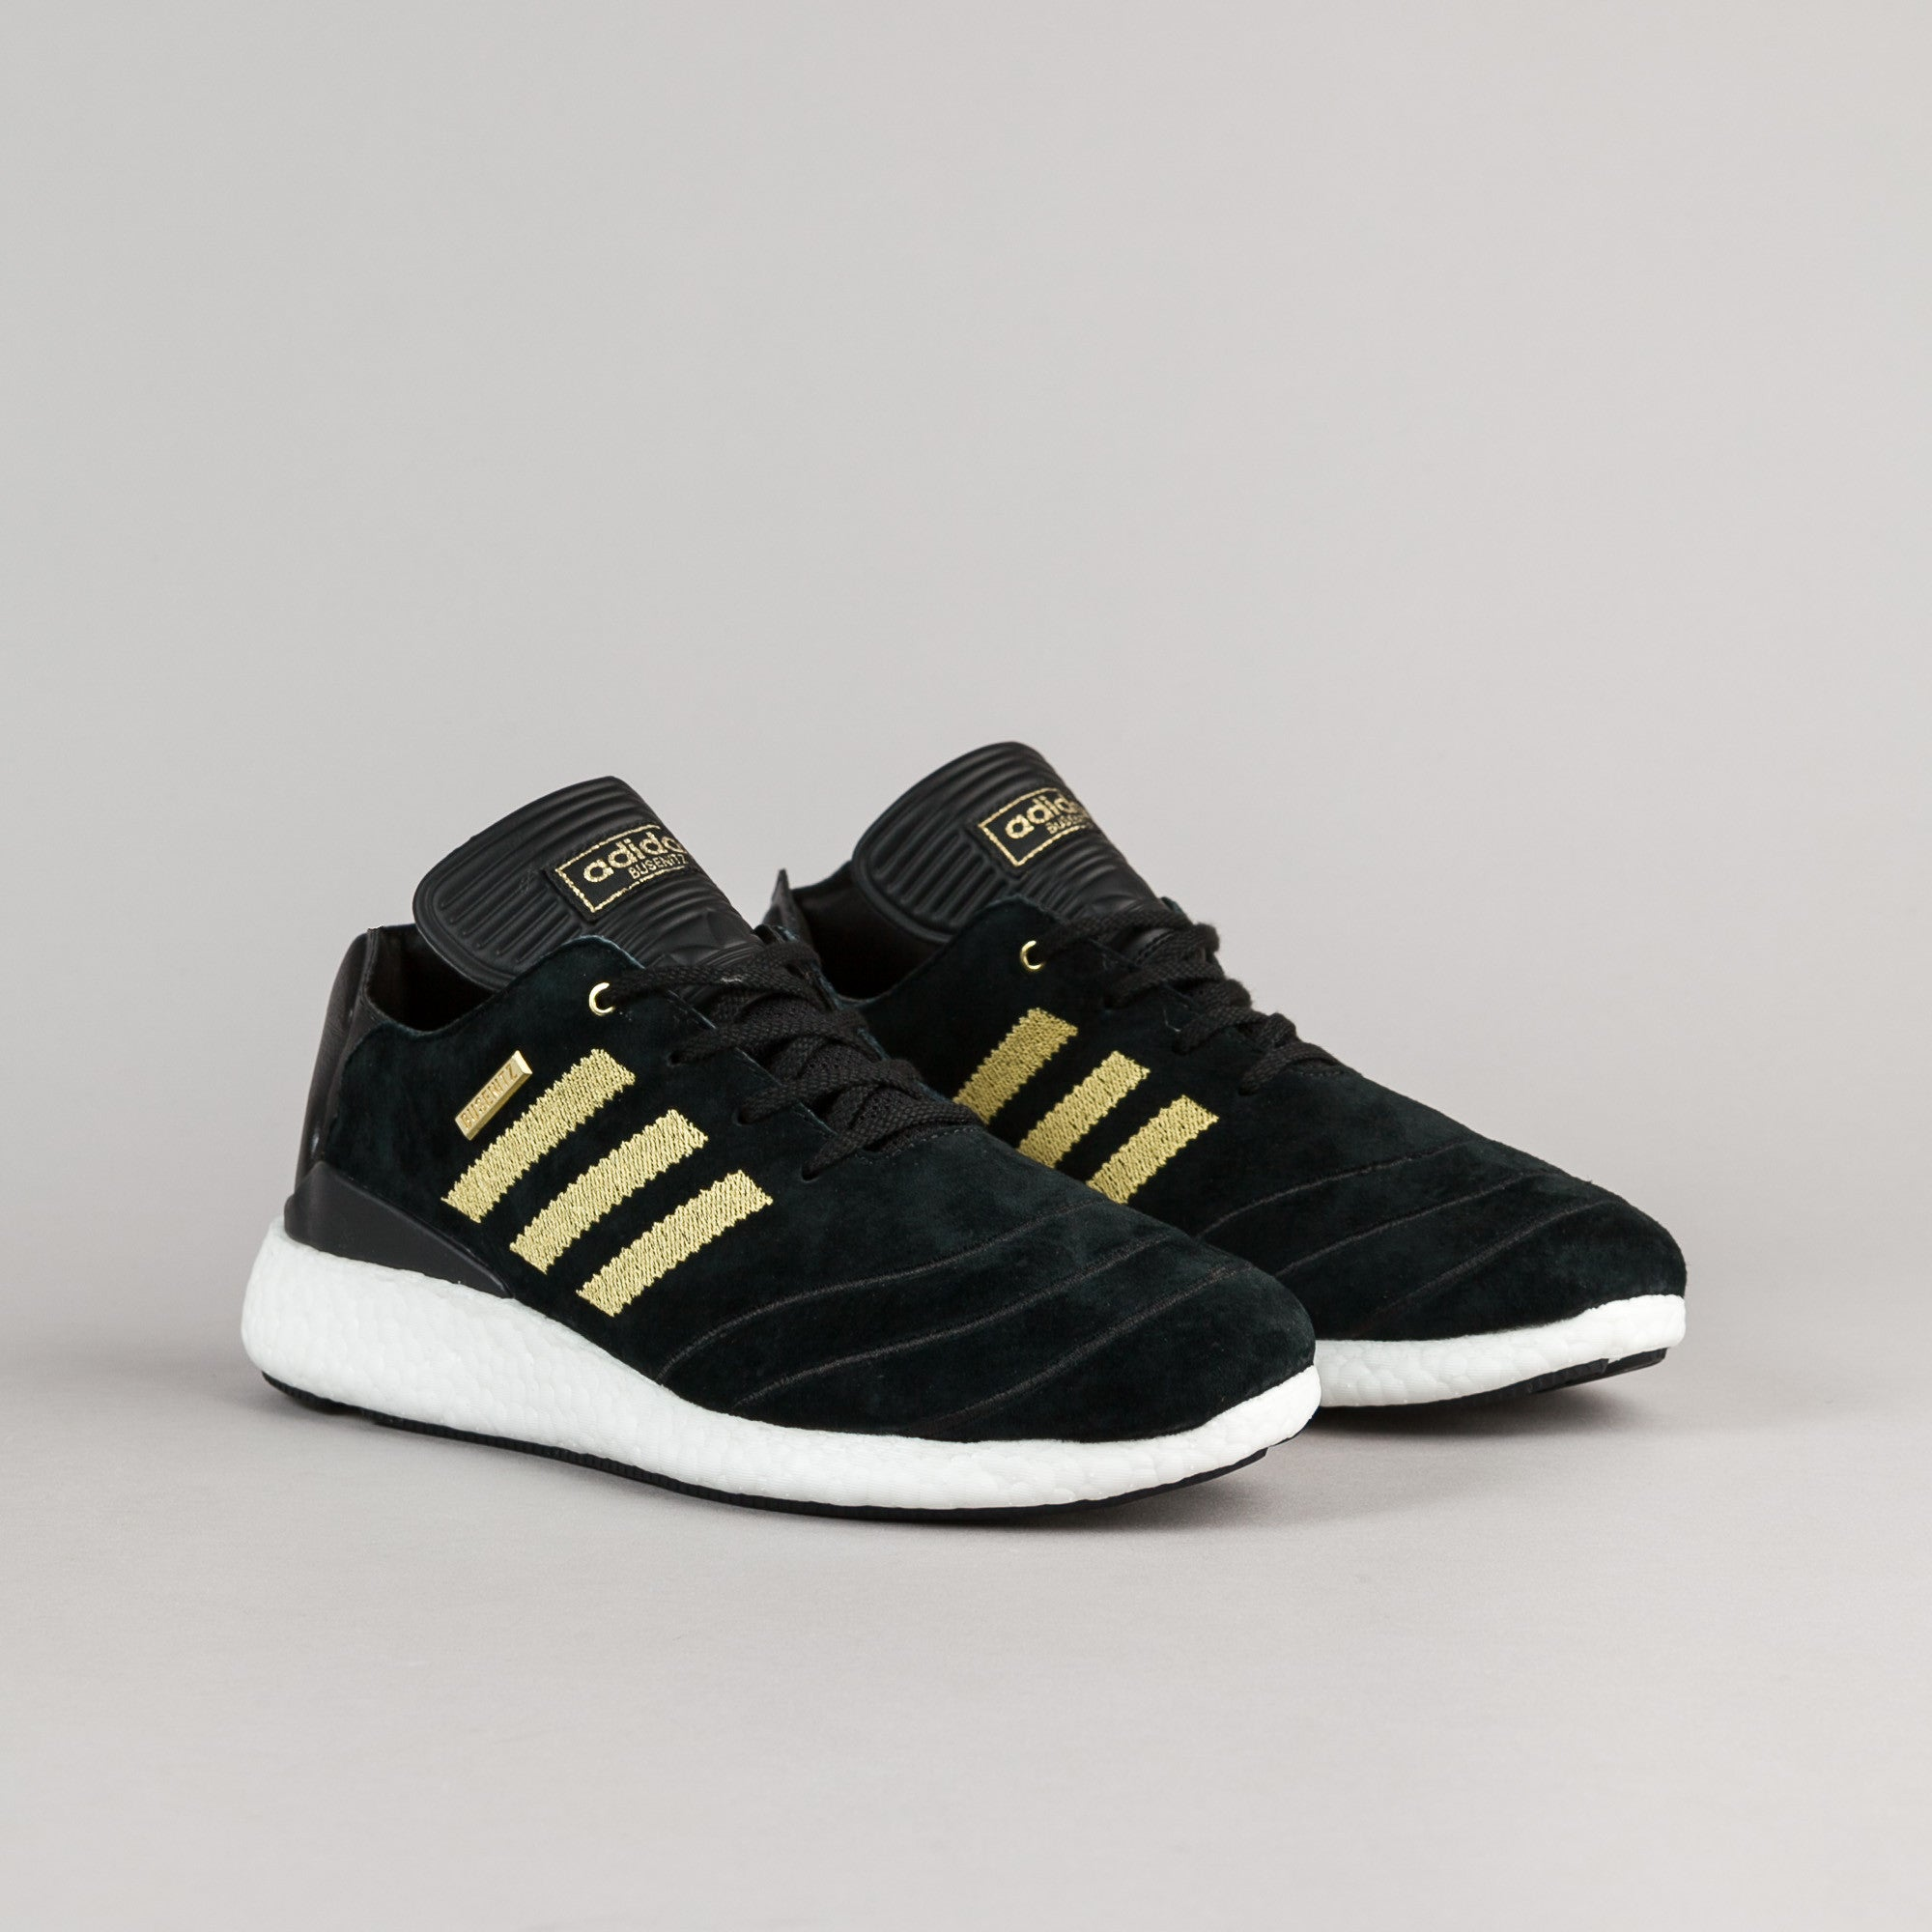 Adidas Busenitz Pure Boost 10 Year Anniversary Shoes - Core Black / Metallic Gold / White